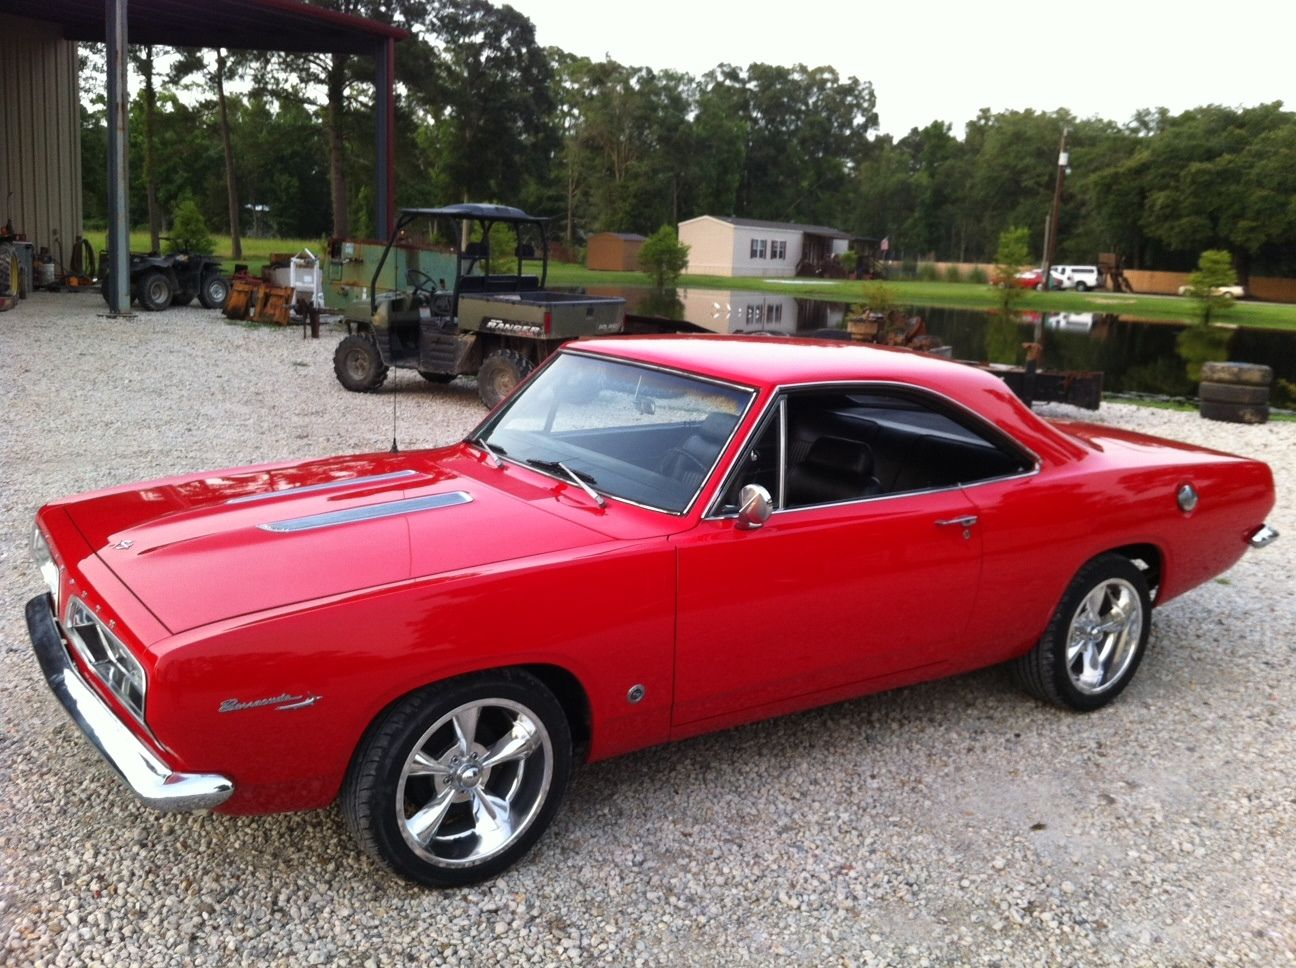 1967 Plymouth Barracuda - Project Cars For Sale